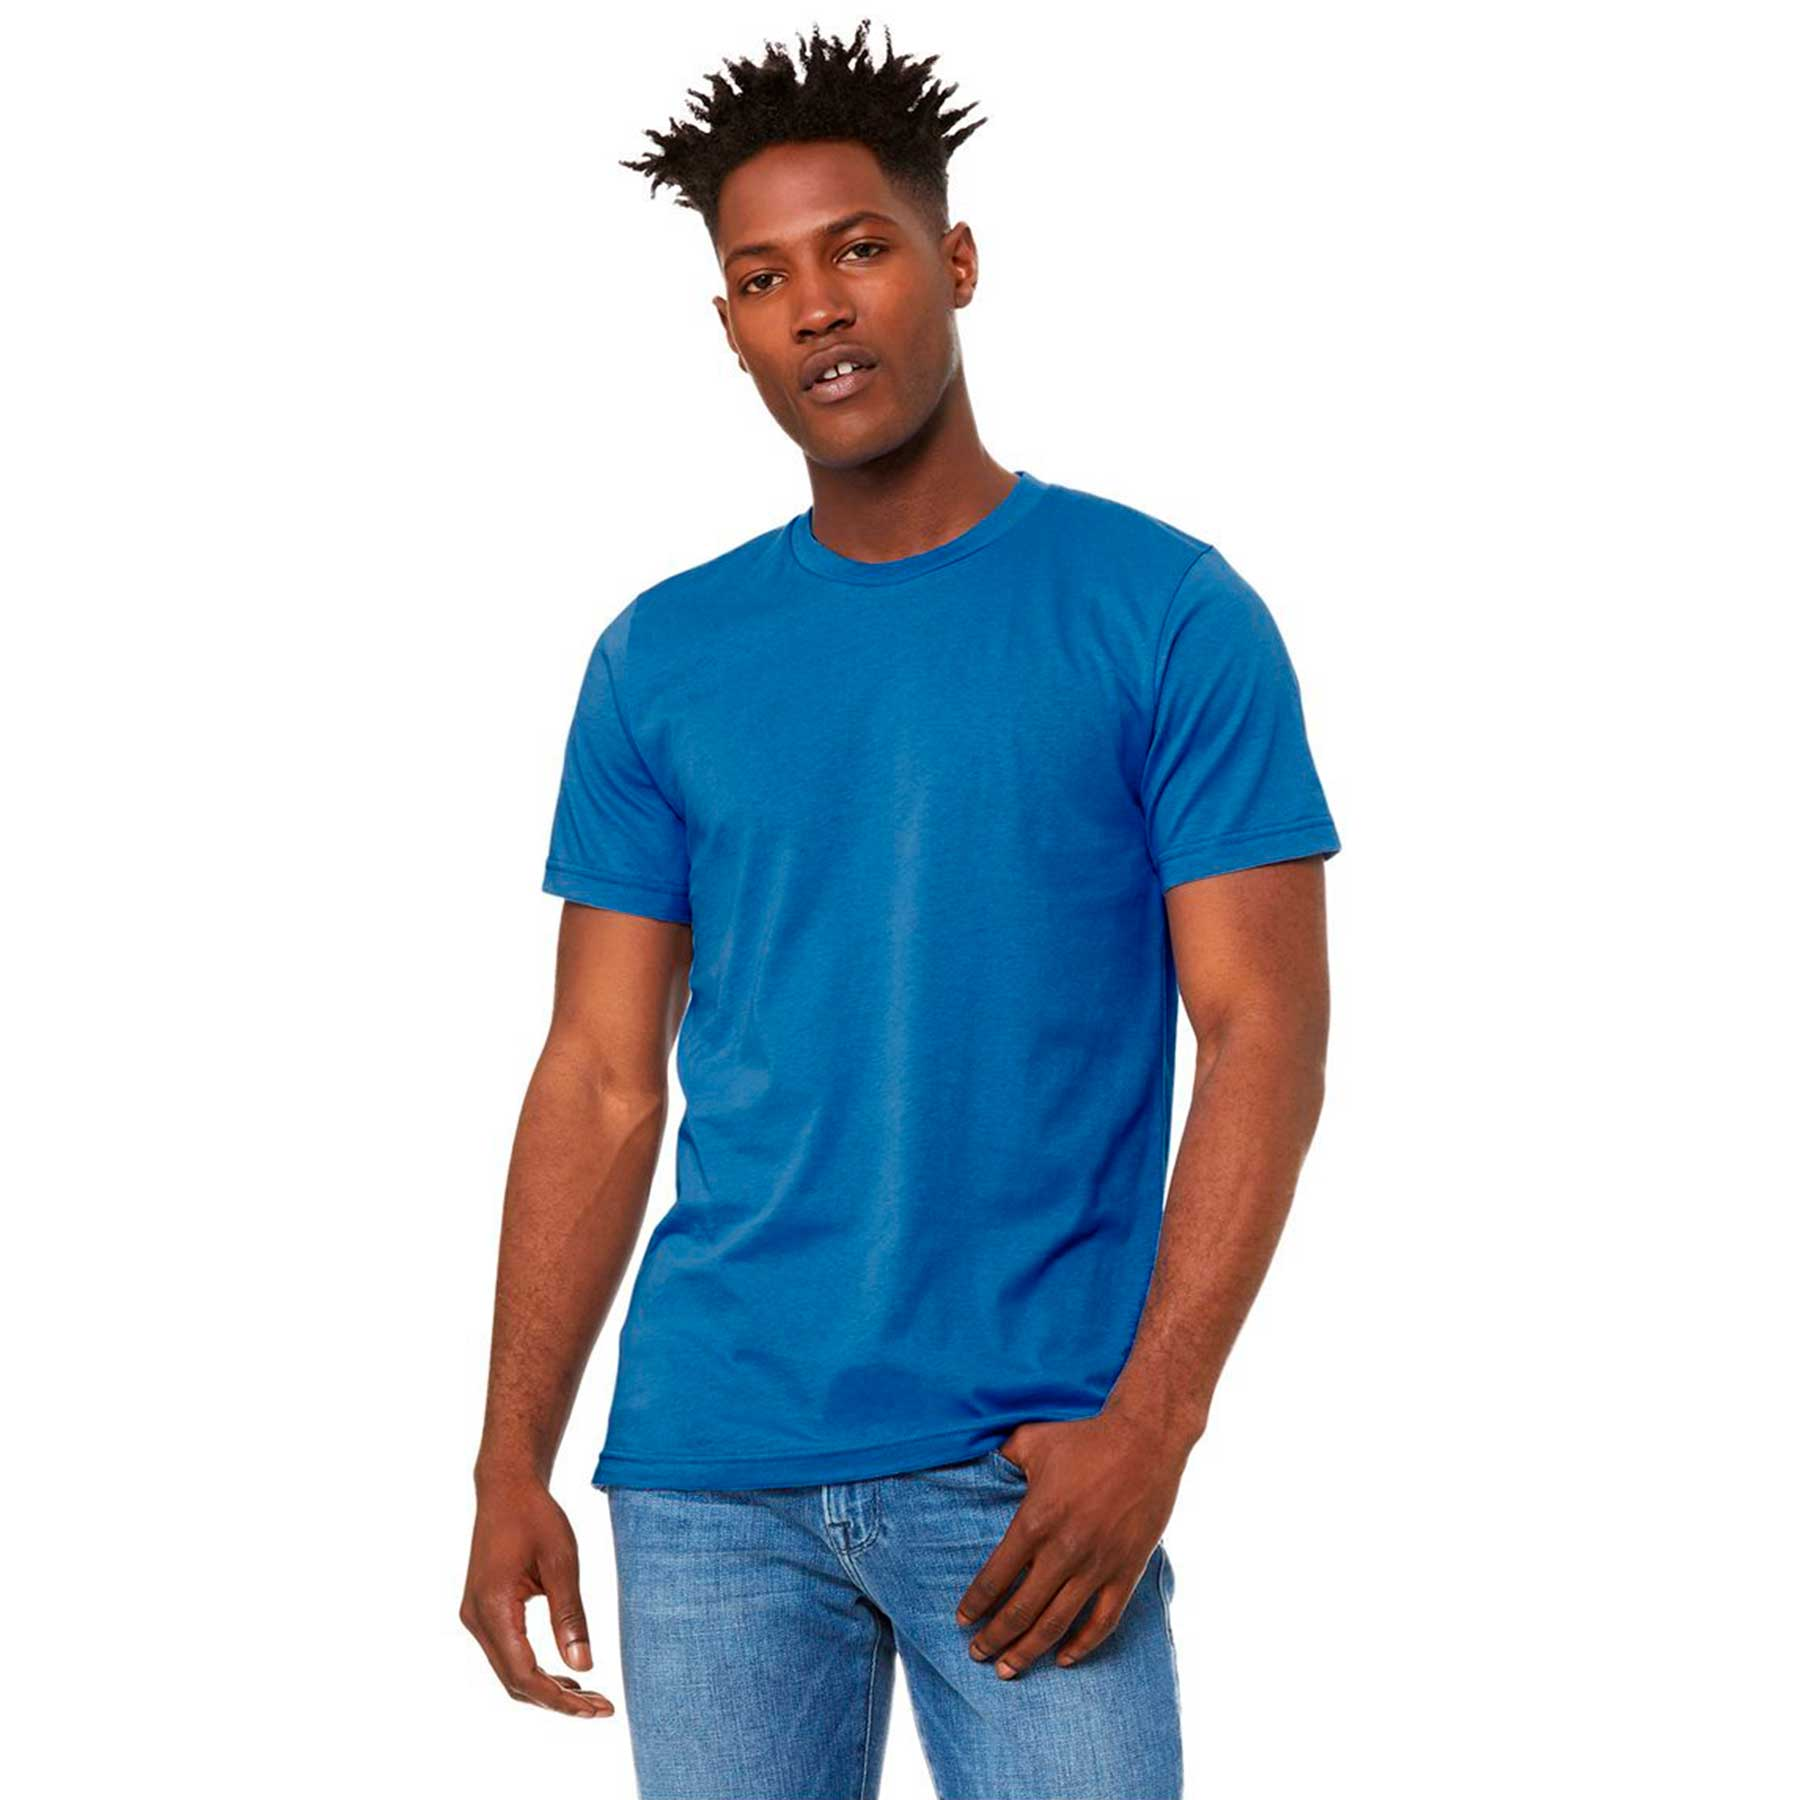 Apparel Catalog T-Shirts